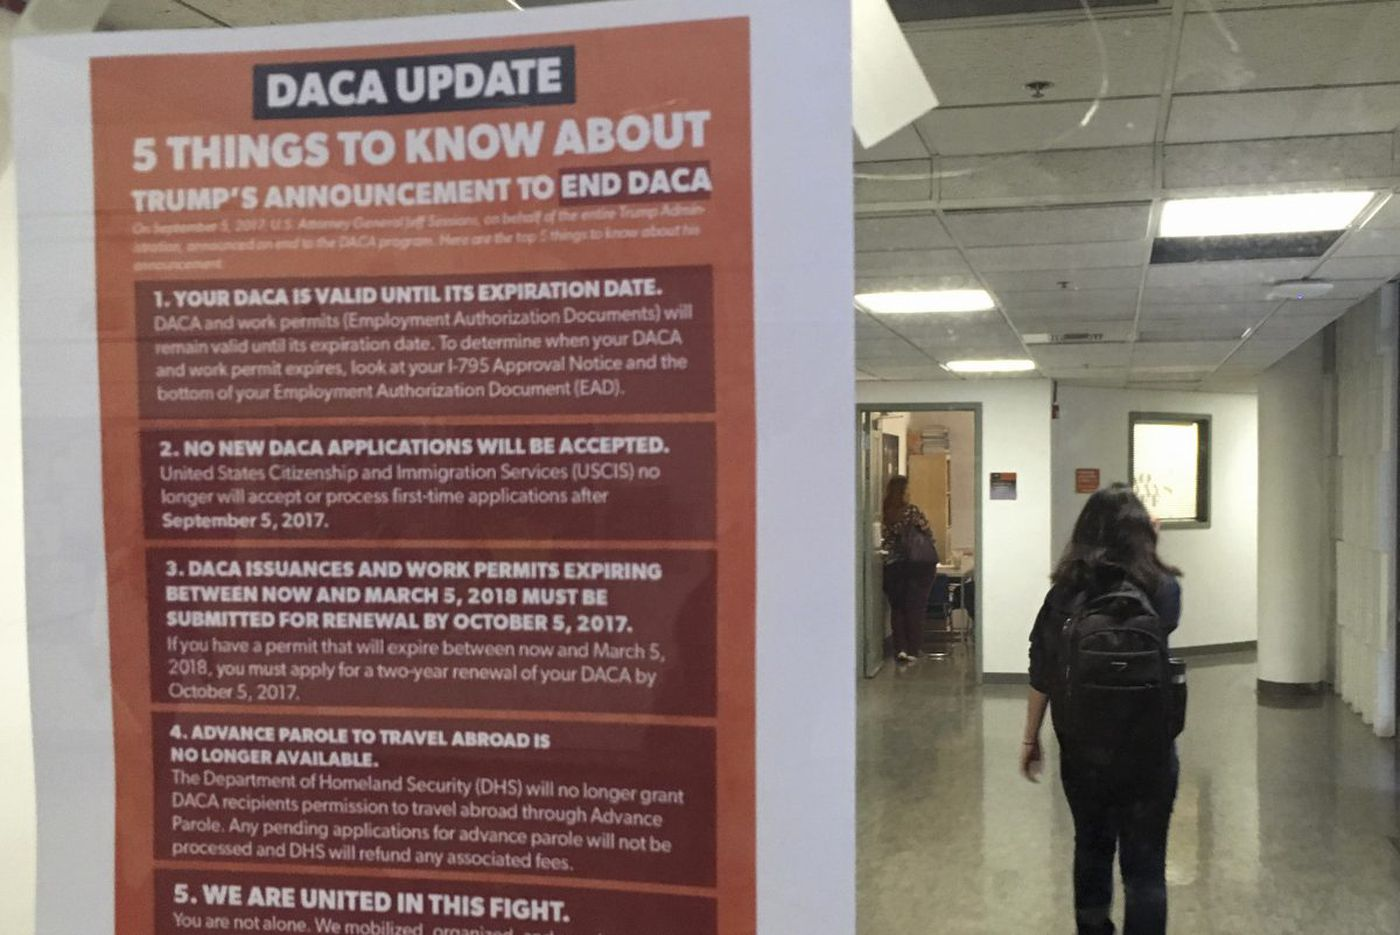 Out of the shadows with DACA, and now plunged into uncertainty